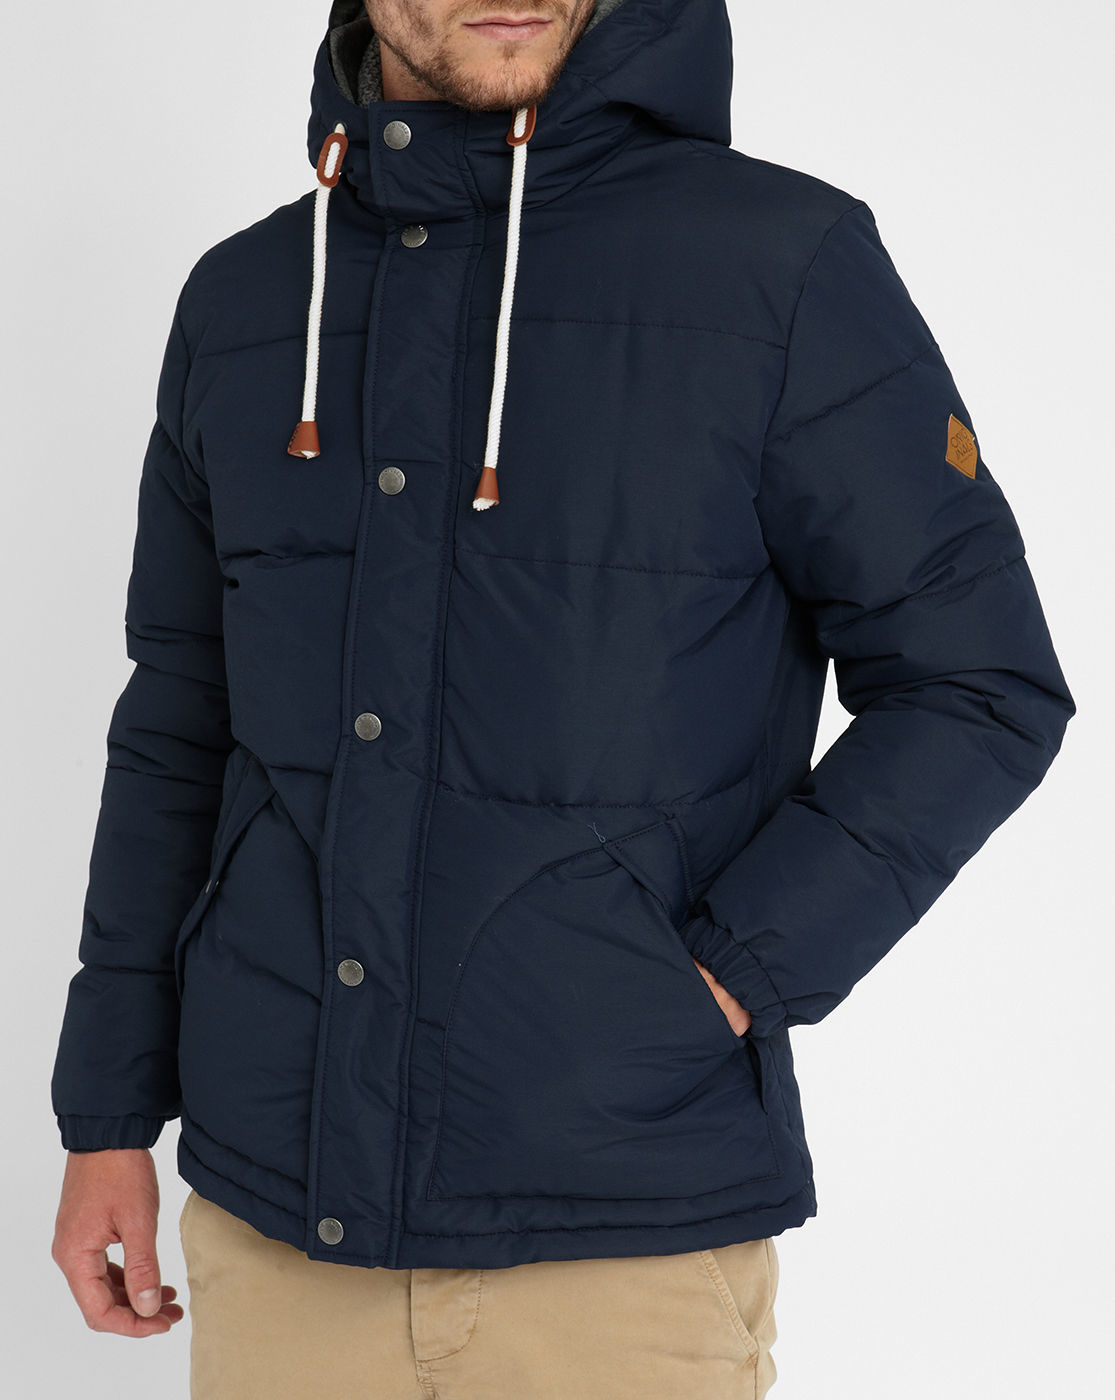 jack jones navy jjorplum down jacket in blue for men lyst. Black Bedroom Furniture Sets. Home Design Ideas